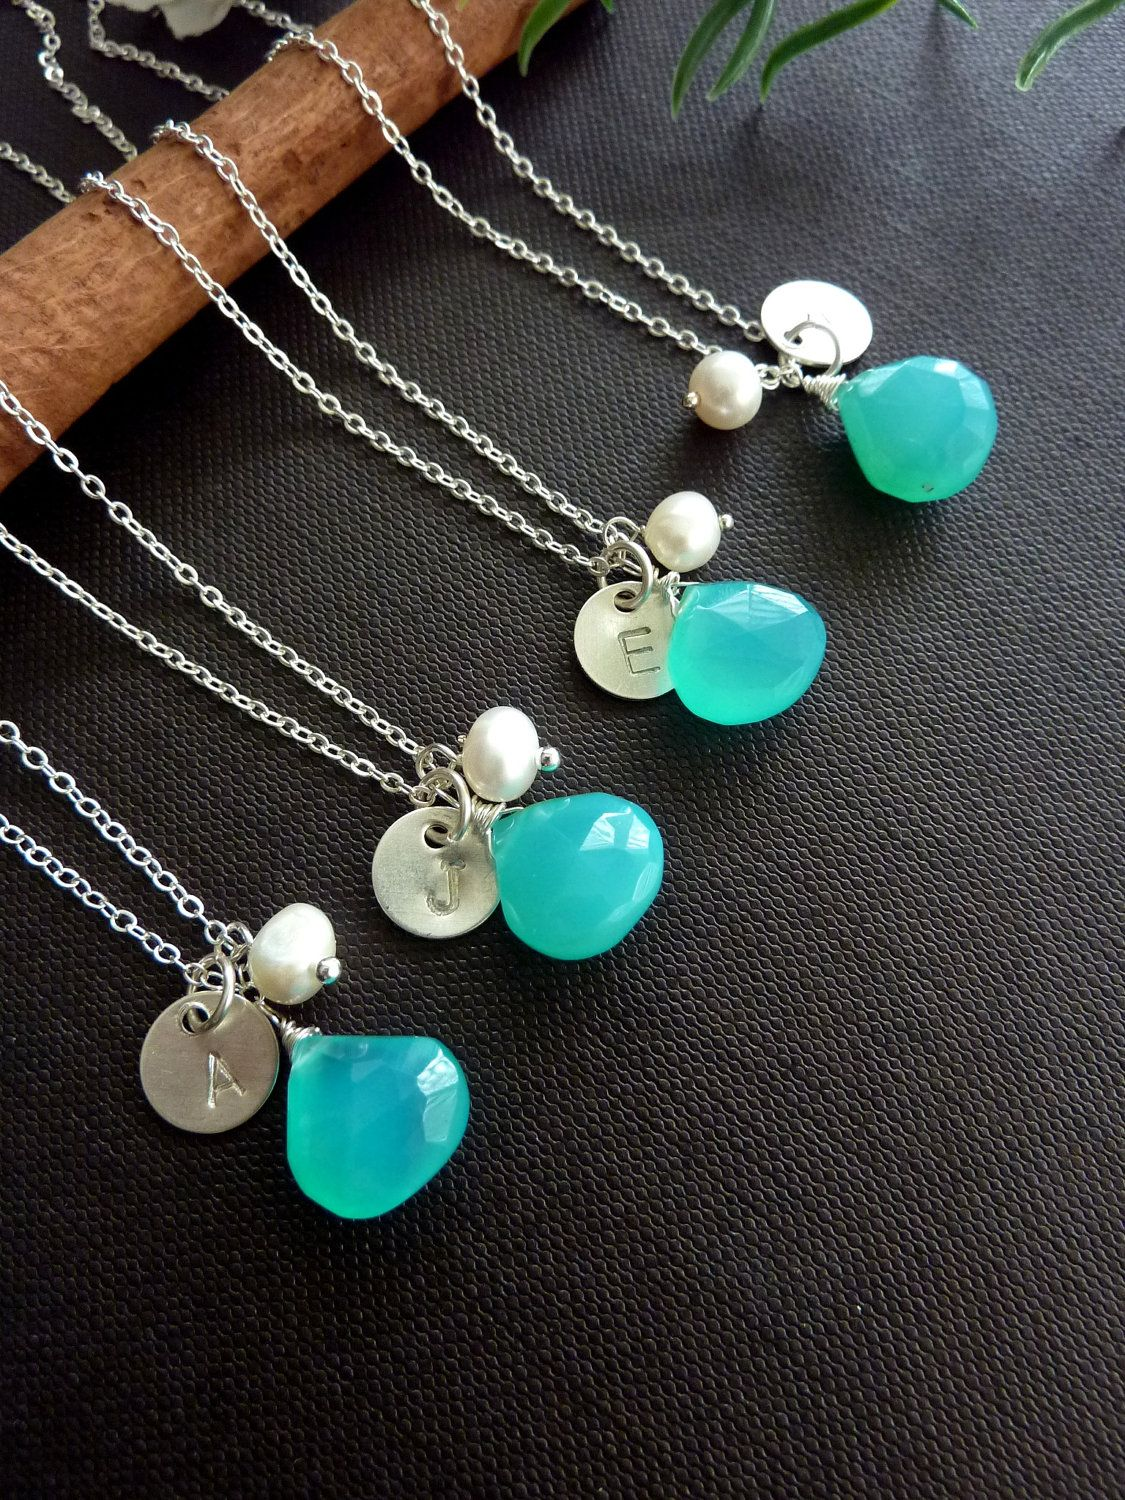 SET of 4 - Turquoise Blue Chalcedony, Sterling Silver Initial Disc, Pearl Necklace in Sterling Silver Chain. $135.00, via Etsy.